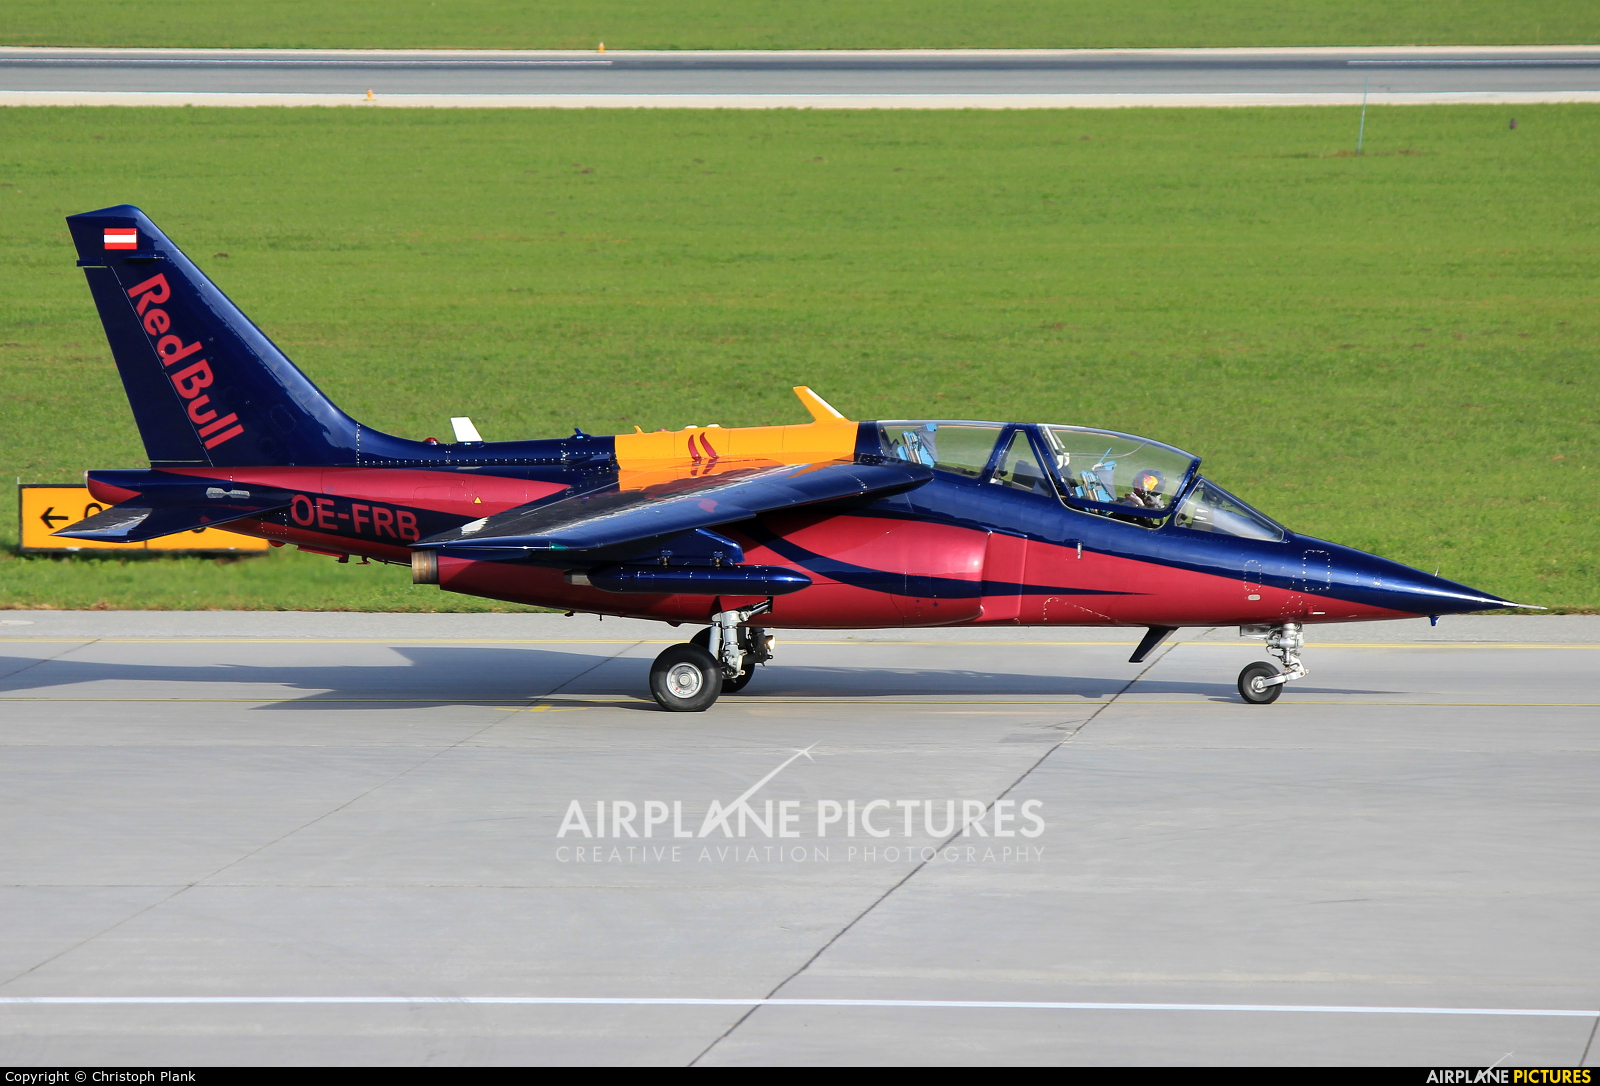 Red Bull OE-FRB aircraft at Innsbruck